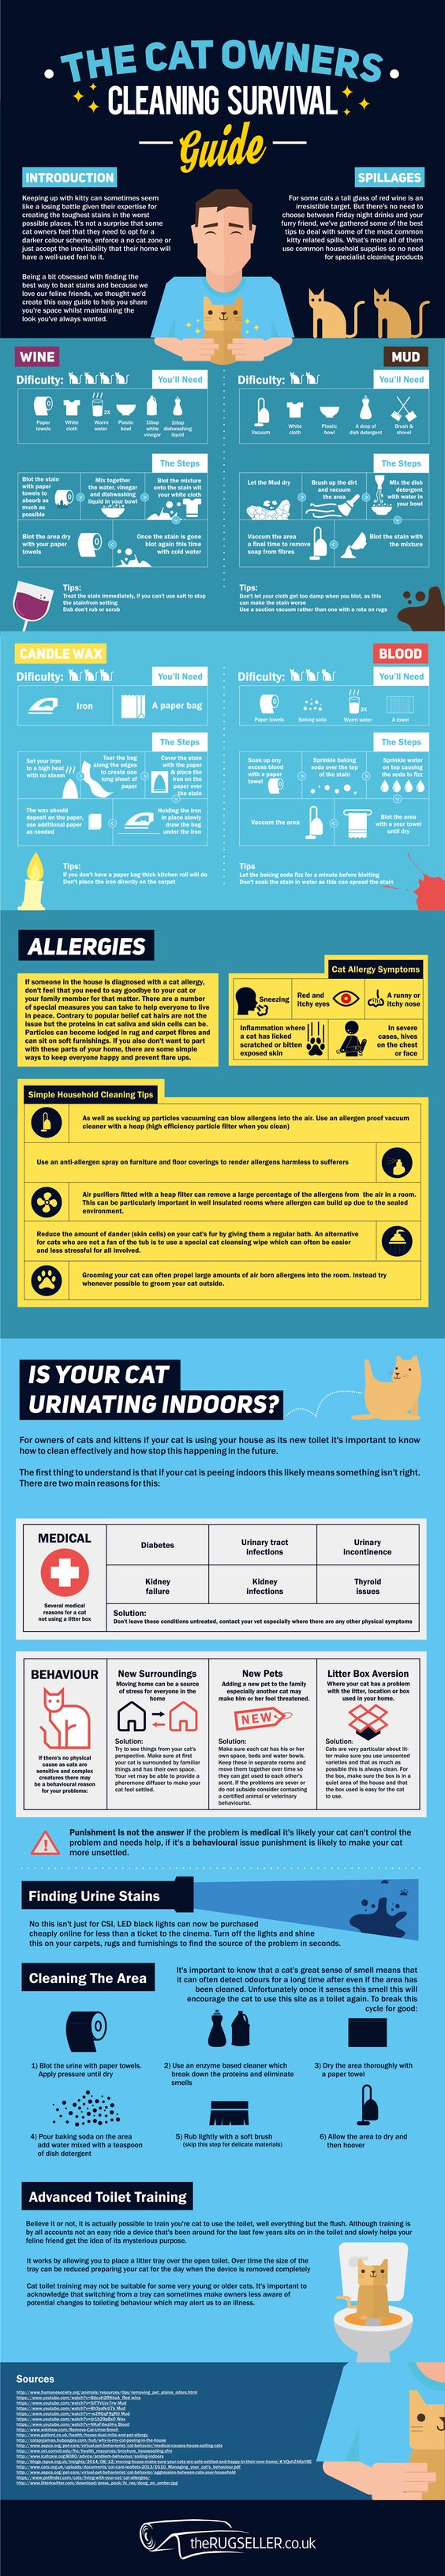 Cat Owners Carpet and Rug Cleaning Guide  ** Learn more on #cats with Ozzi Cat Magazine >> http://OzziCat.com.au **: